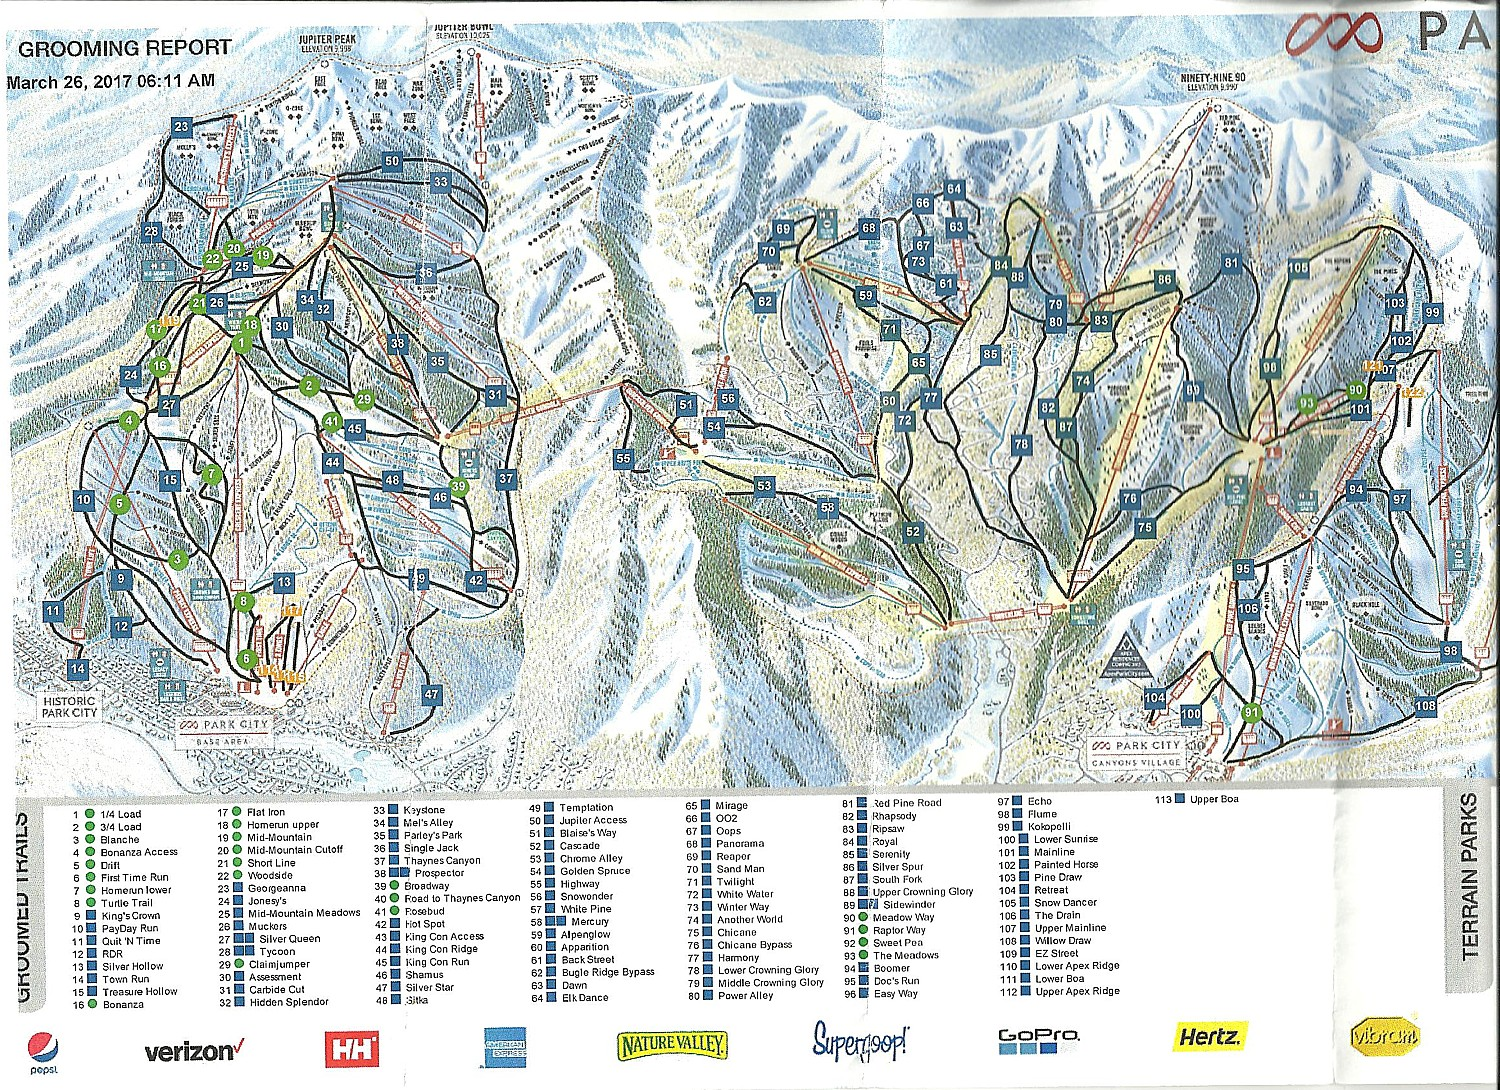 Park City Mountain Utah Biggest Ski Area In US Is One Of Easiest - Park city map